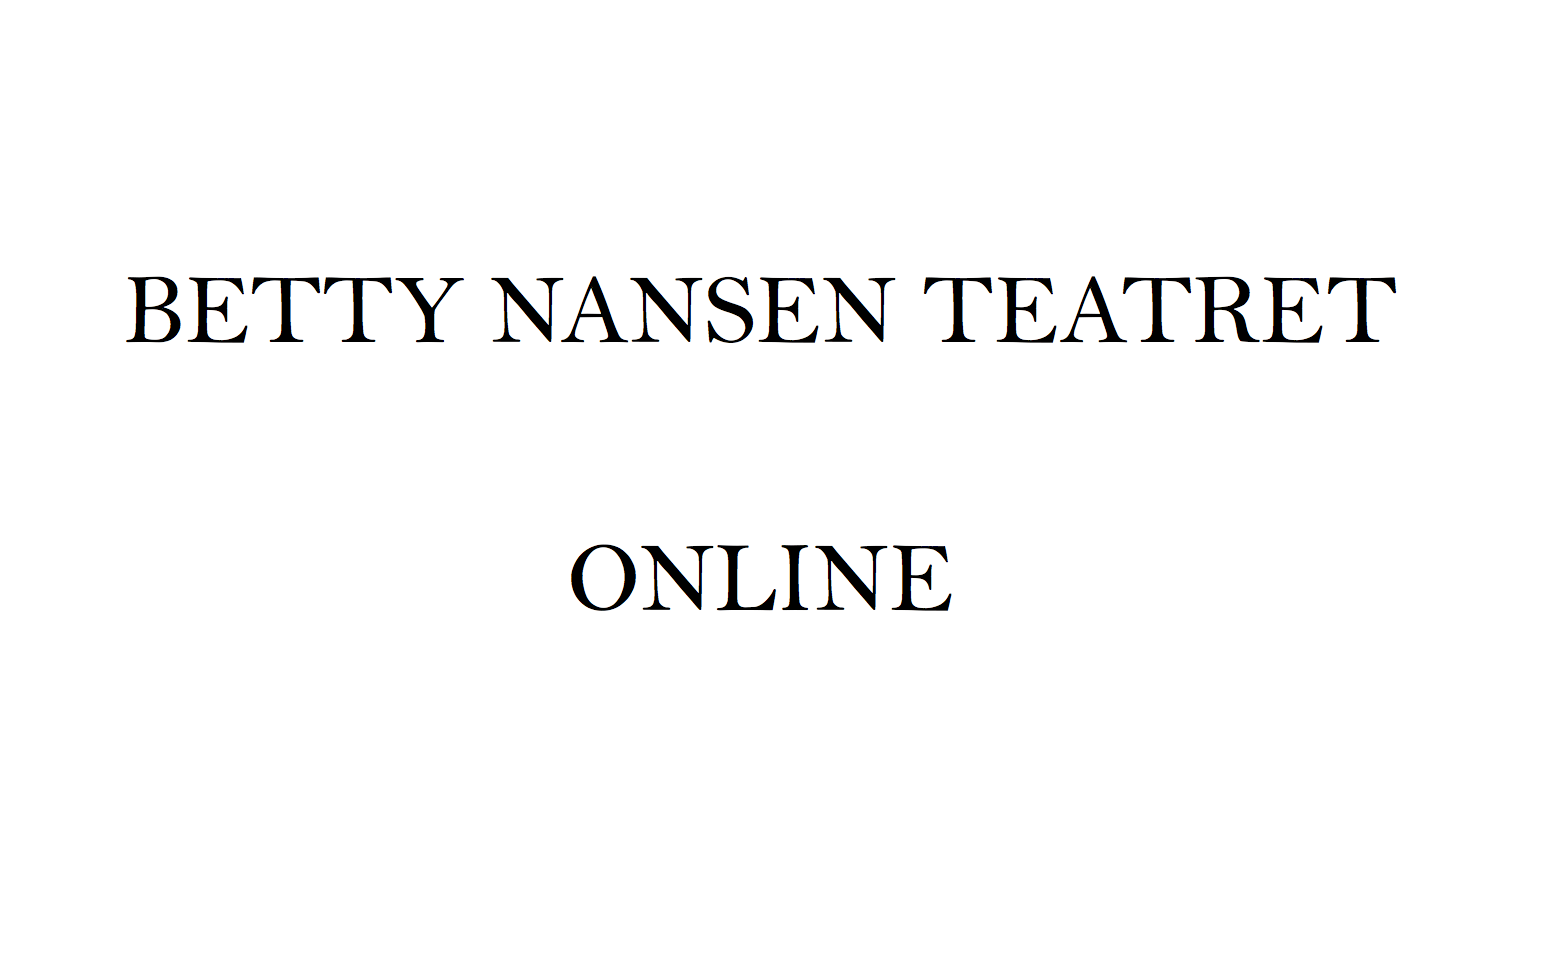 Betty Nansen Teatret (online)